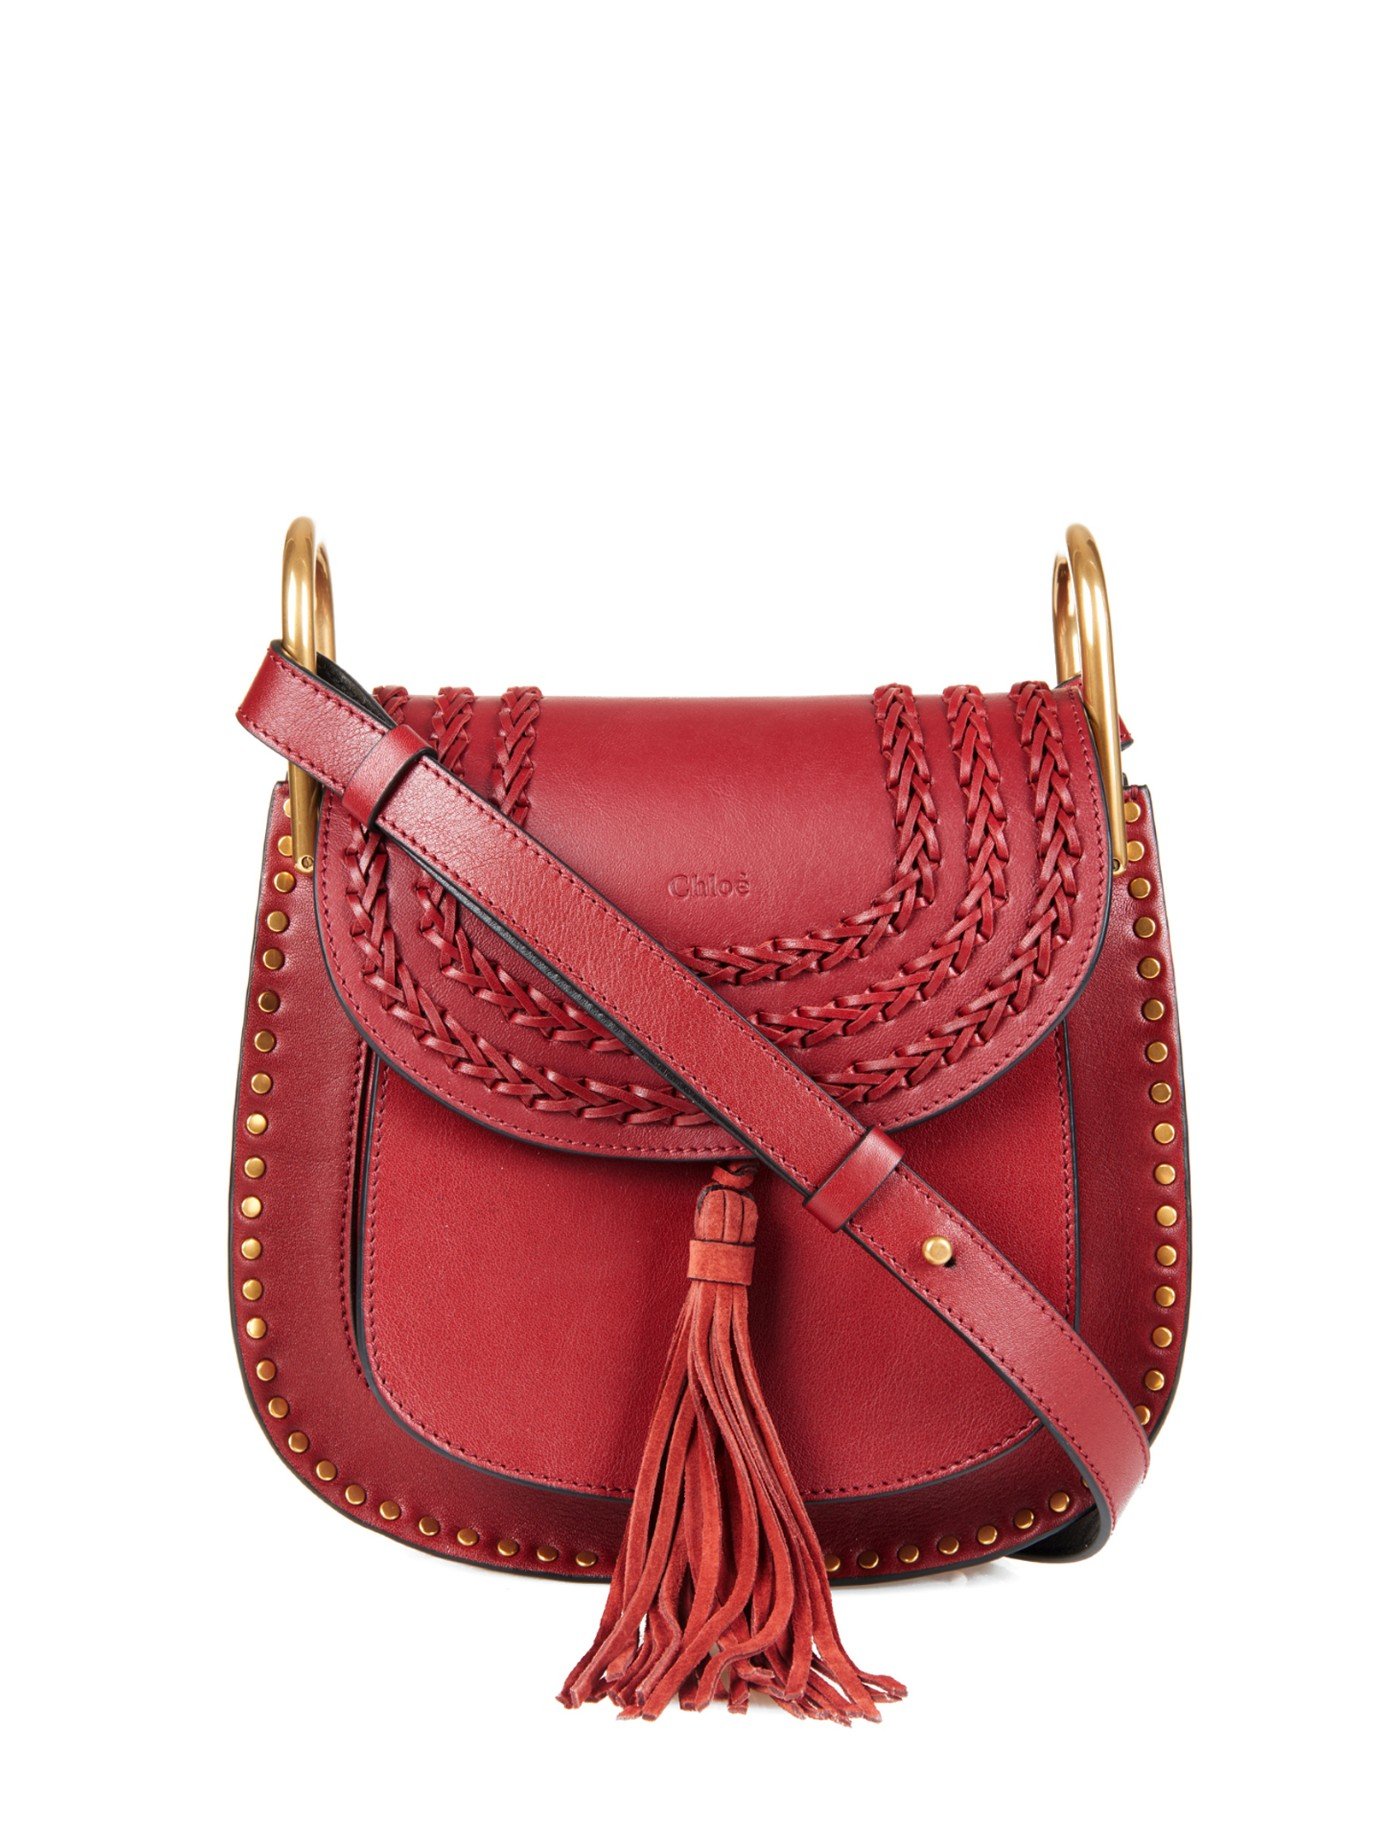 401167326c22 Lyst - Chloé Hudson Small Leather Shoulder Bag in Red